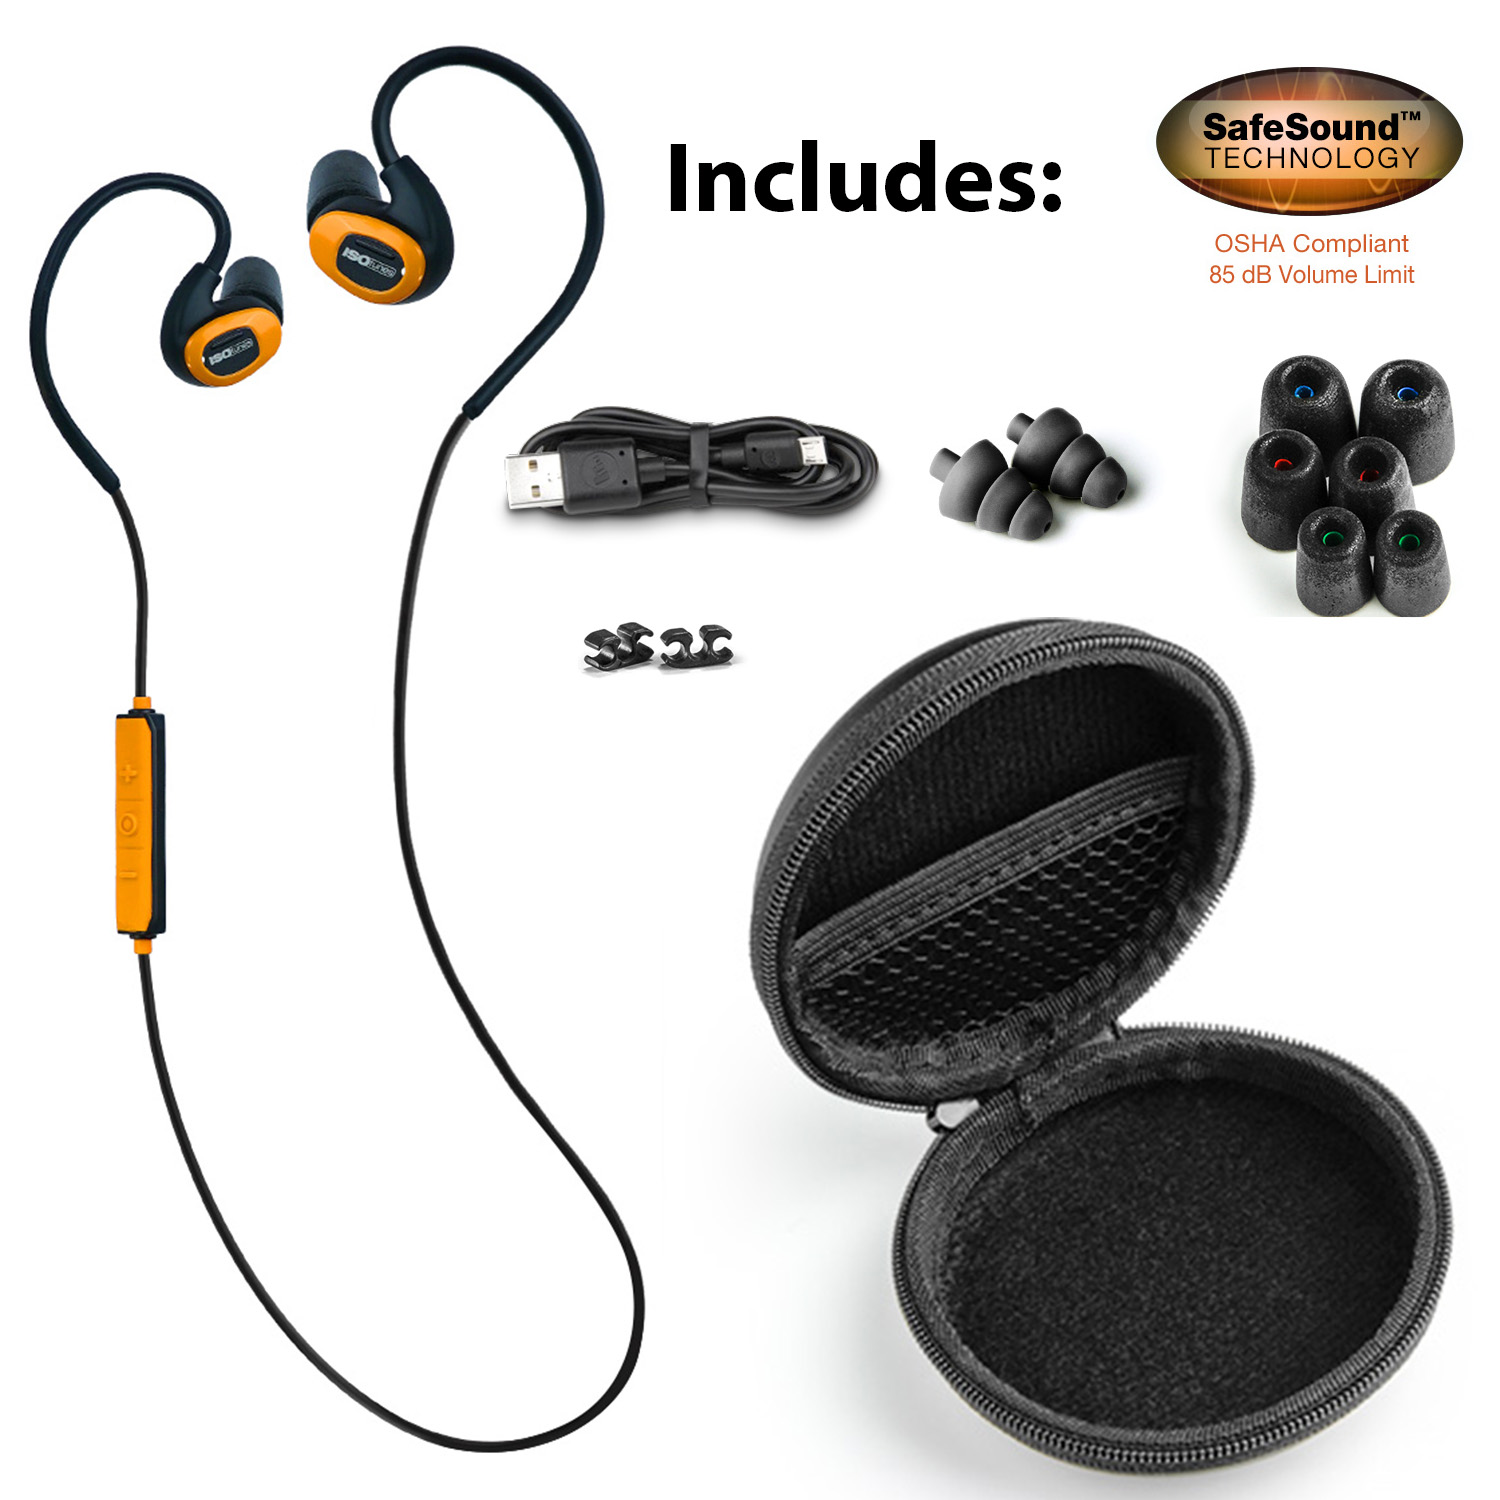 6433a8cc576 Here's the complete ISOtunes Pro kit; a great hard shell case, headset,  three sizes of foam ear pieces, and a charging cord. Similar to using ear  plugs, ...